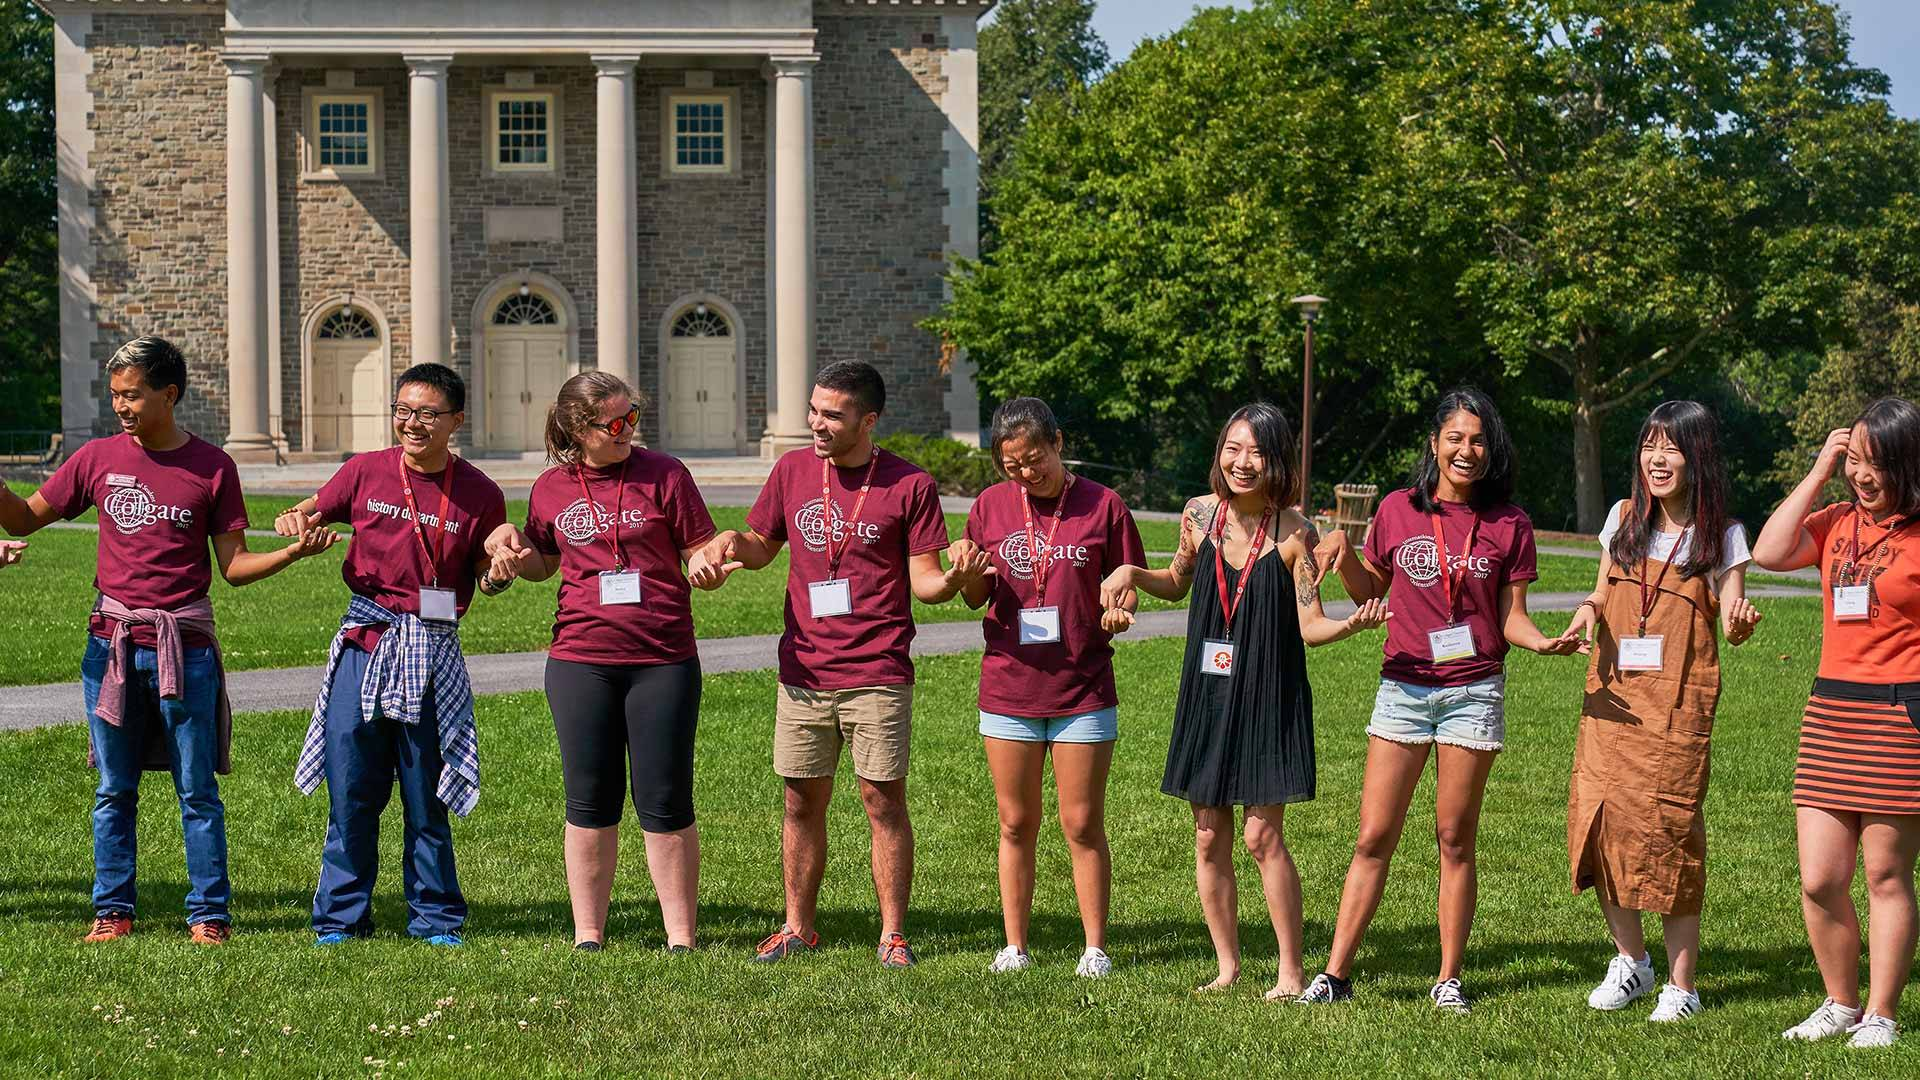 International students participate in a group activity to meet one another on Colgate's Academic Quad